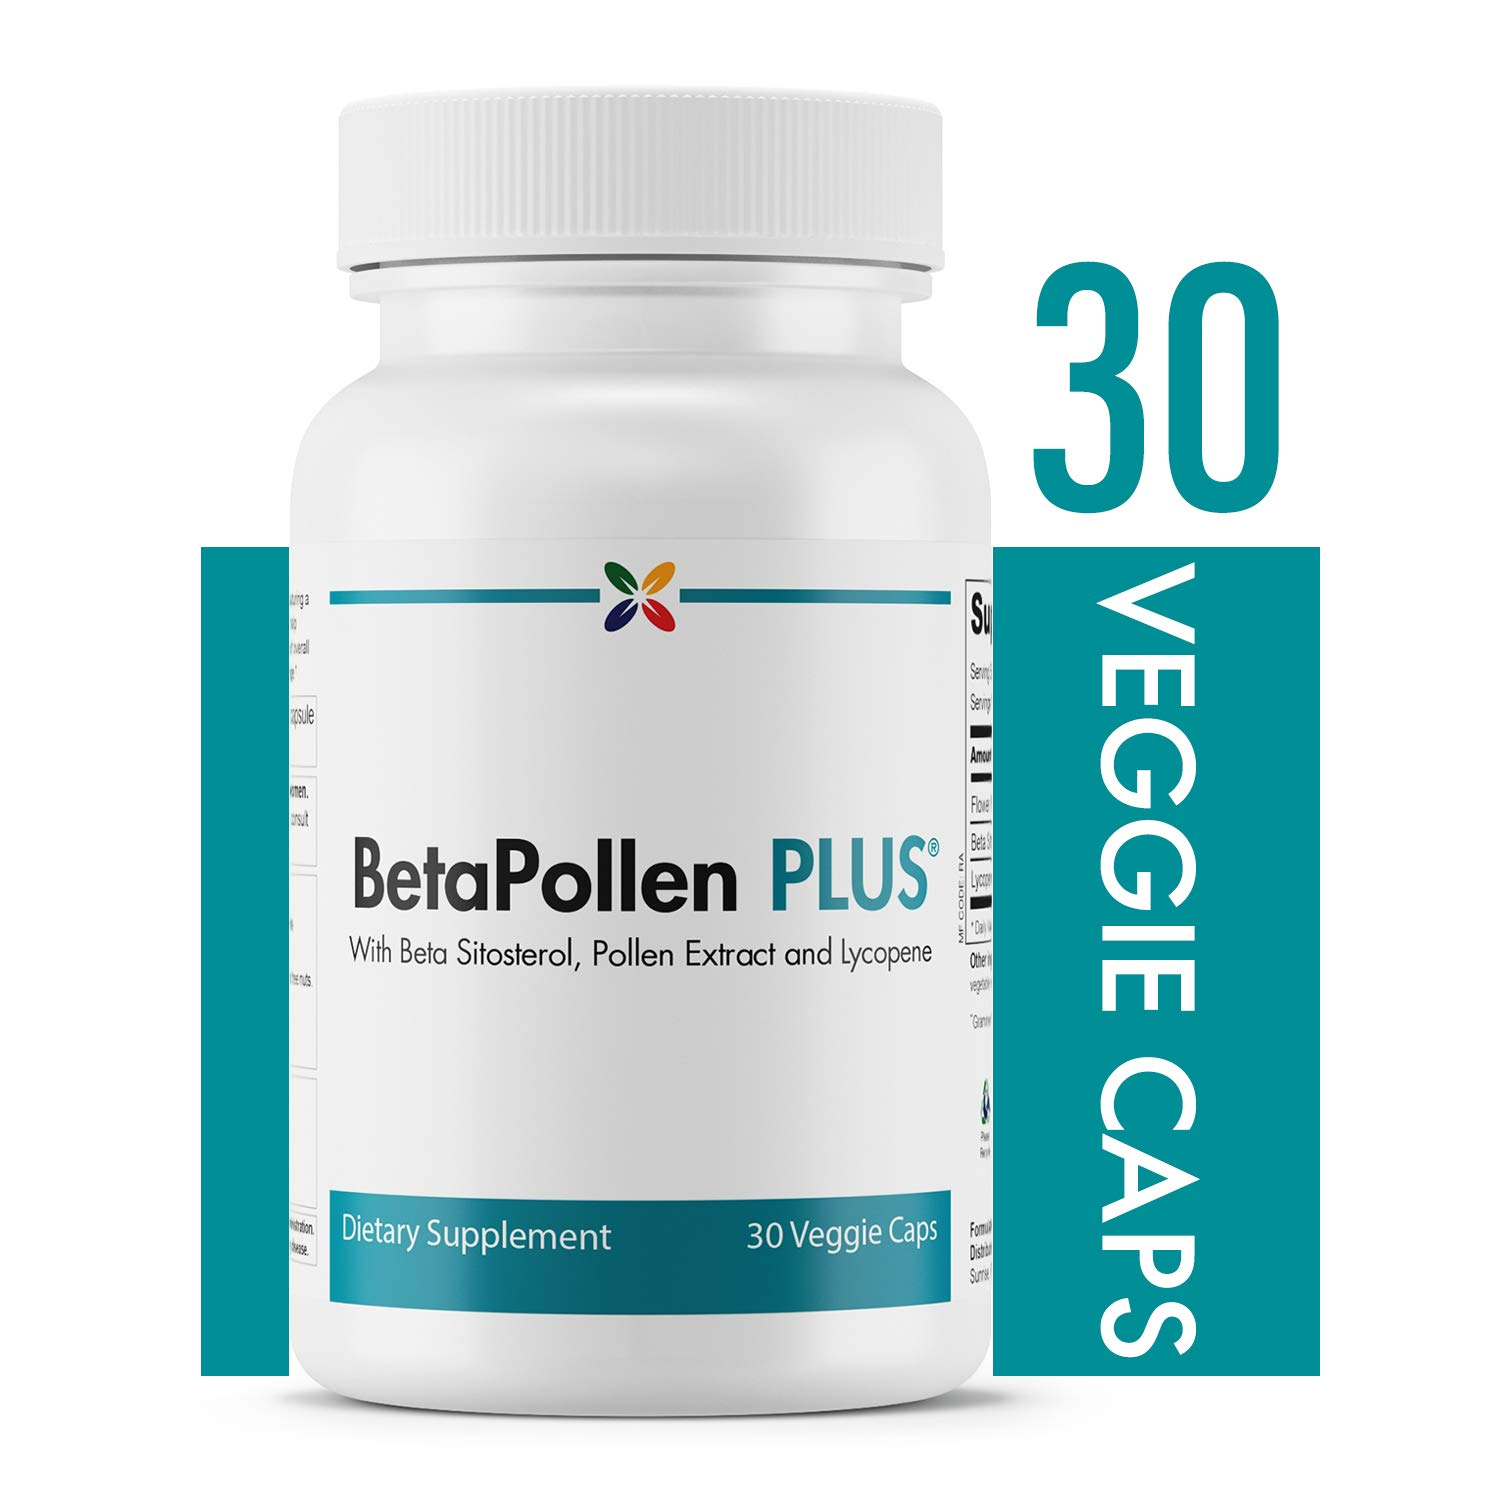 Prostate Support with Beta Sitosterol, Pollen Extract and Lycopene - BetaPollen Plus Prostate Support - Stop Aging Now - 30 Veggie Caps by BetaPollen Plus